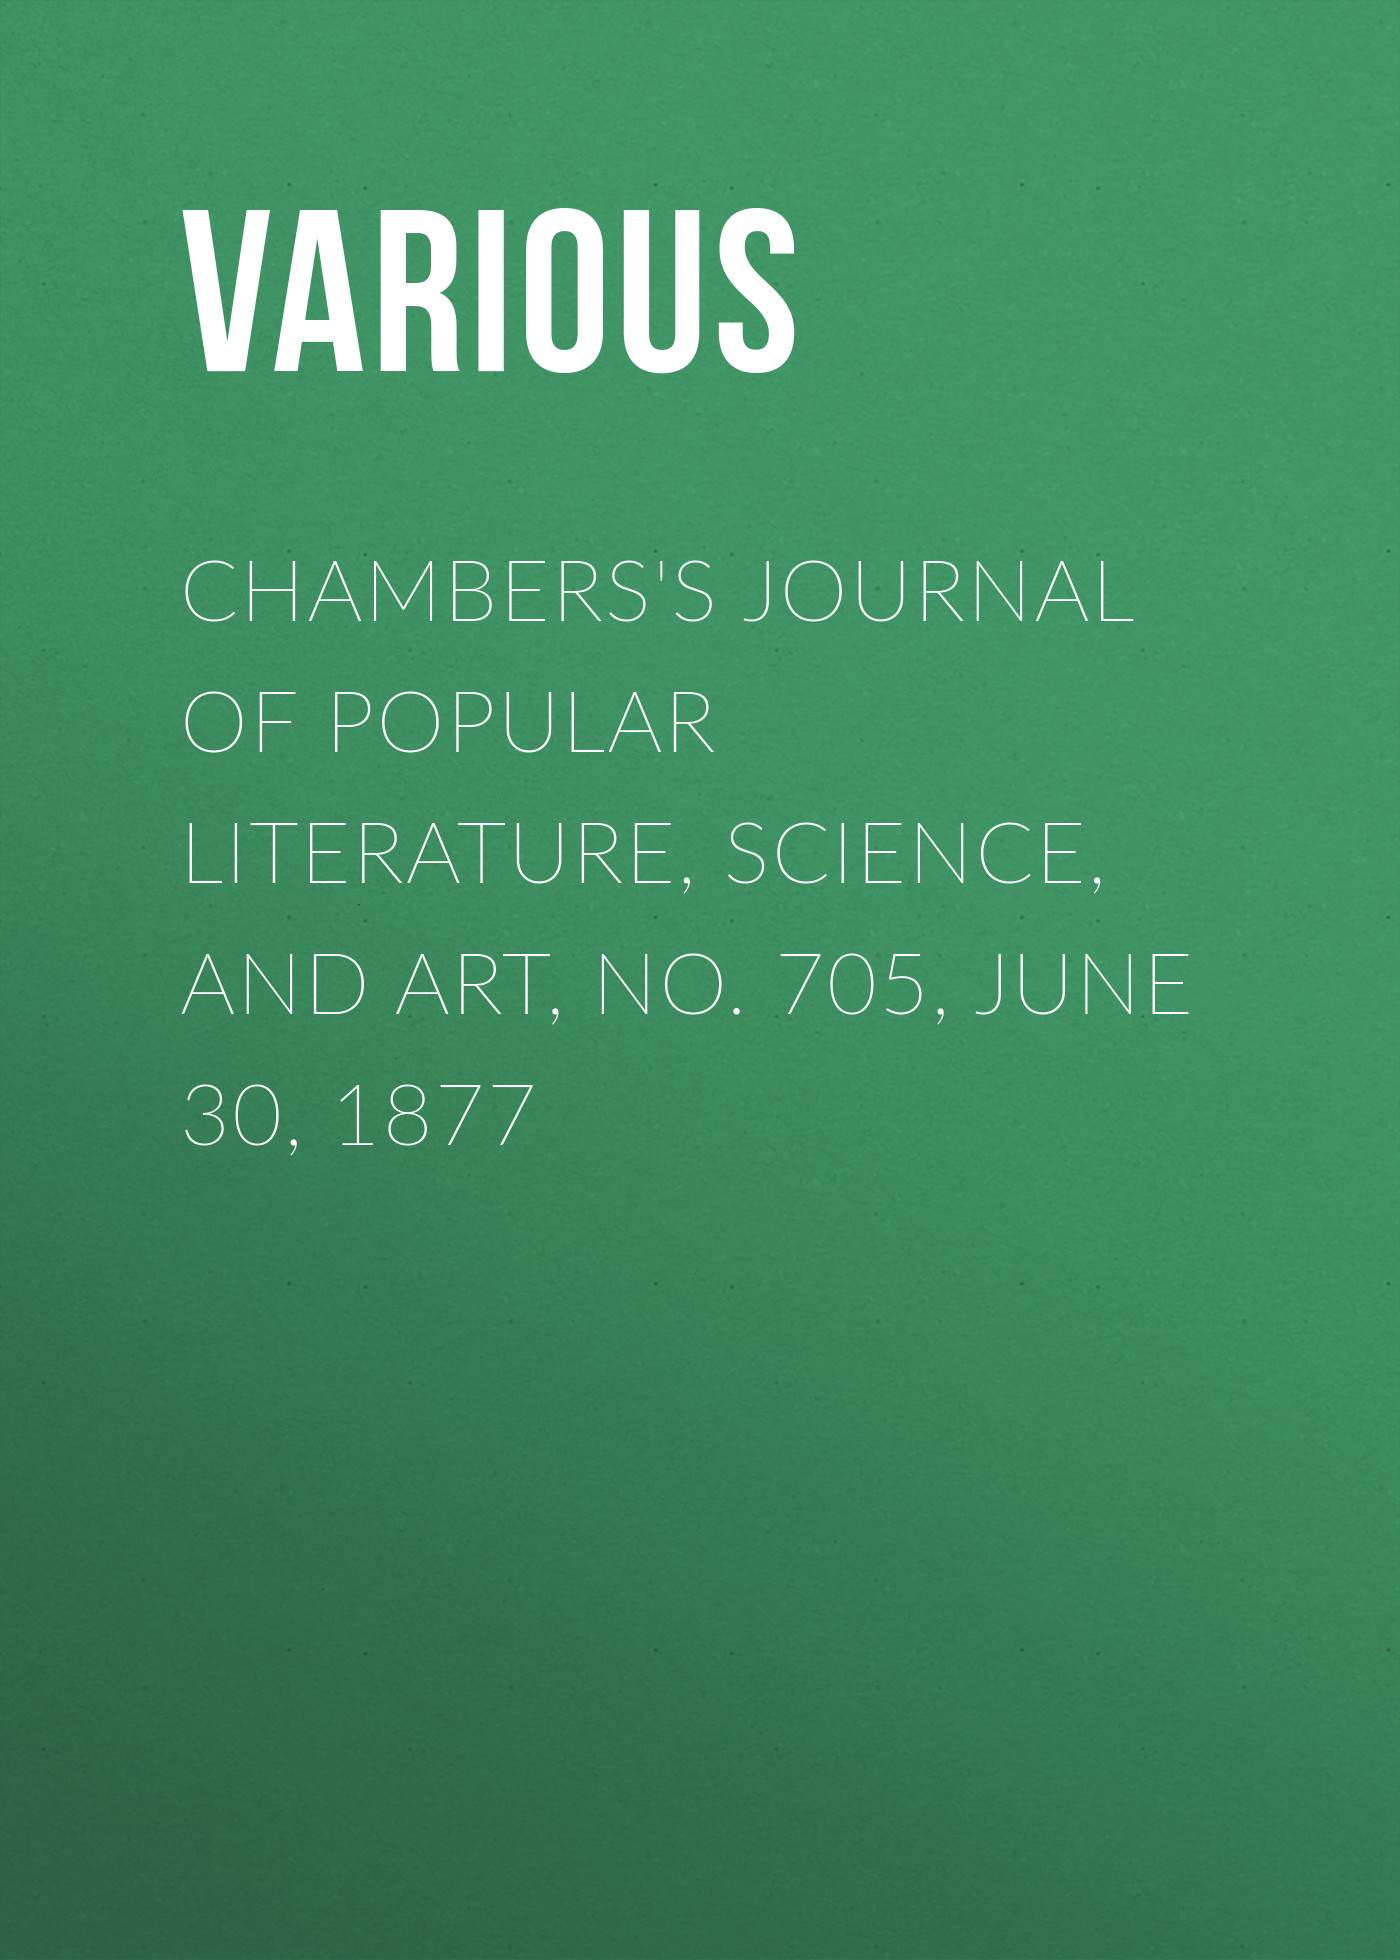 Various Chambers's Journal of Popular Literature, Science, and Art, No. 705, June 30, 1877